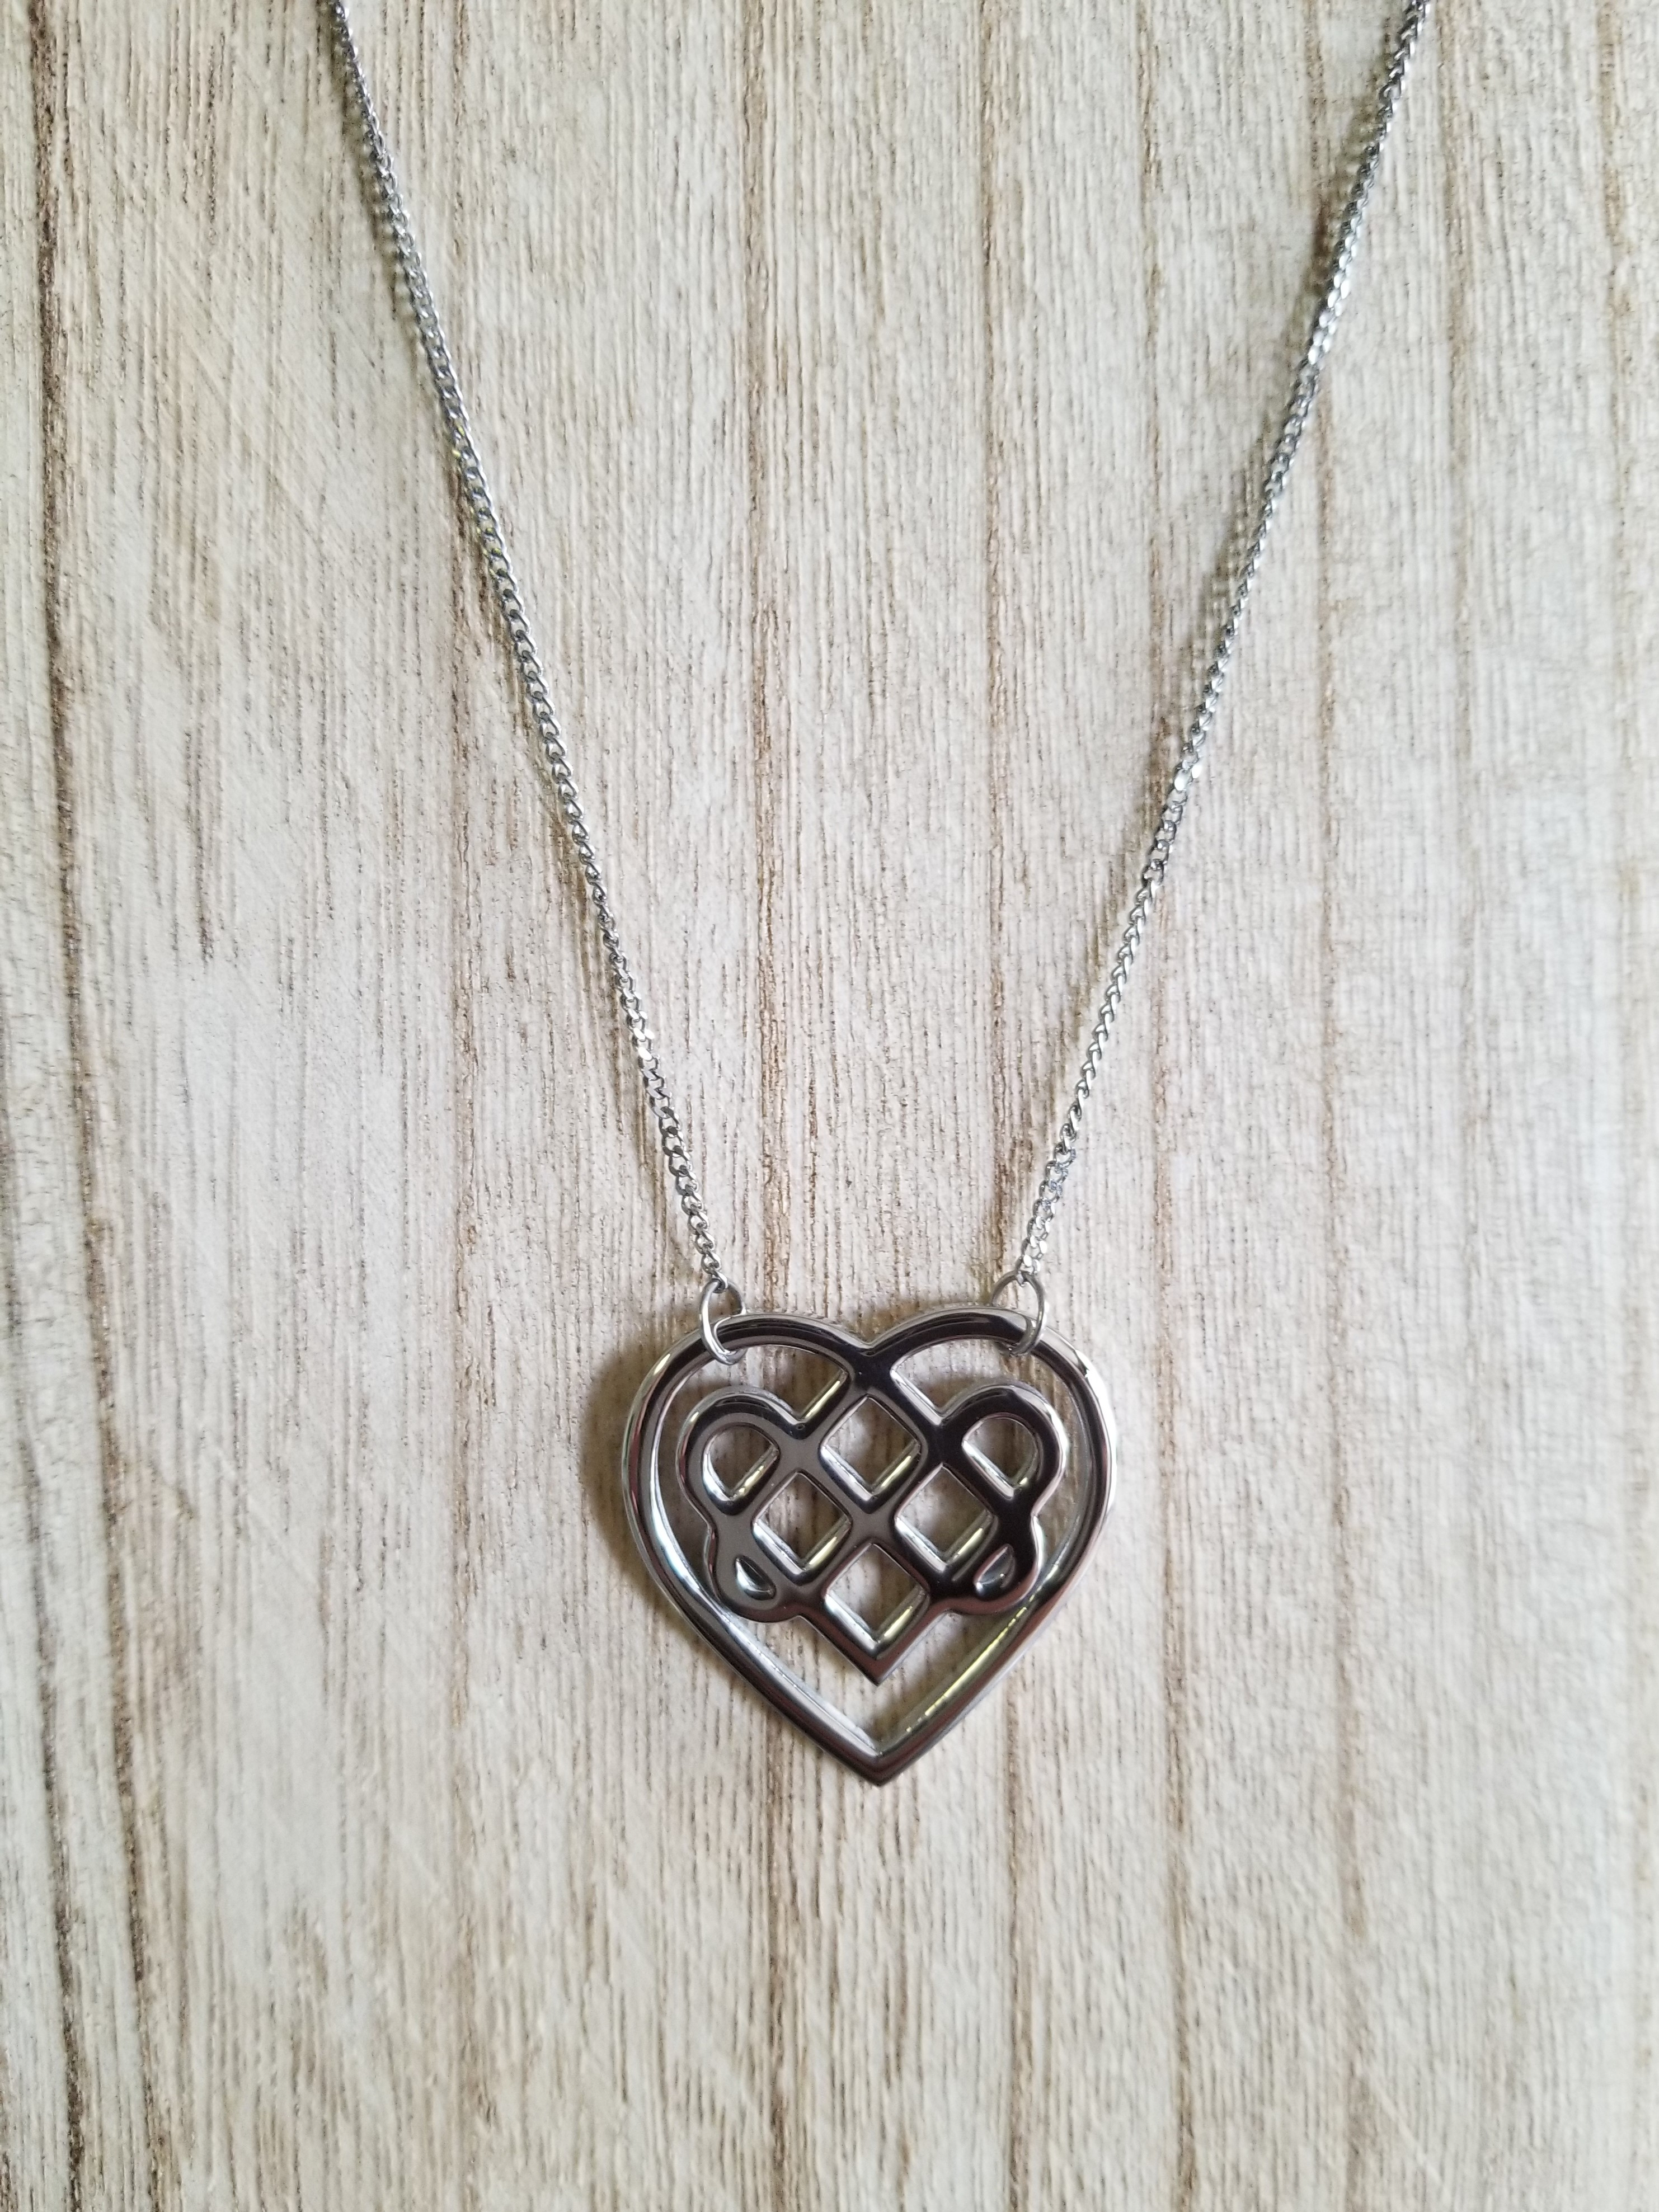 641b64f87d0cc STAINLESS STEEL CELTIC HEART WITH 18